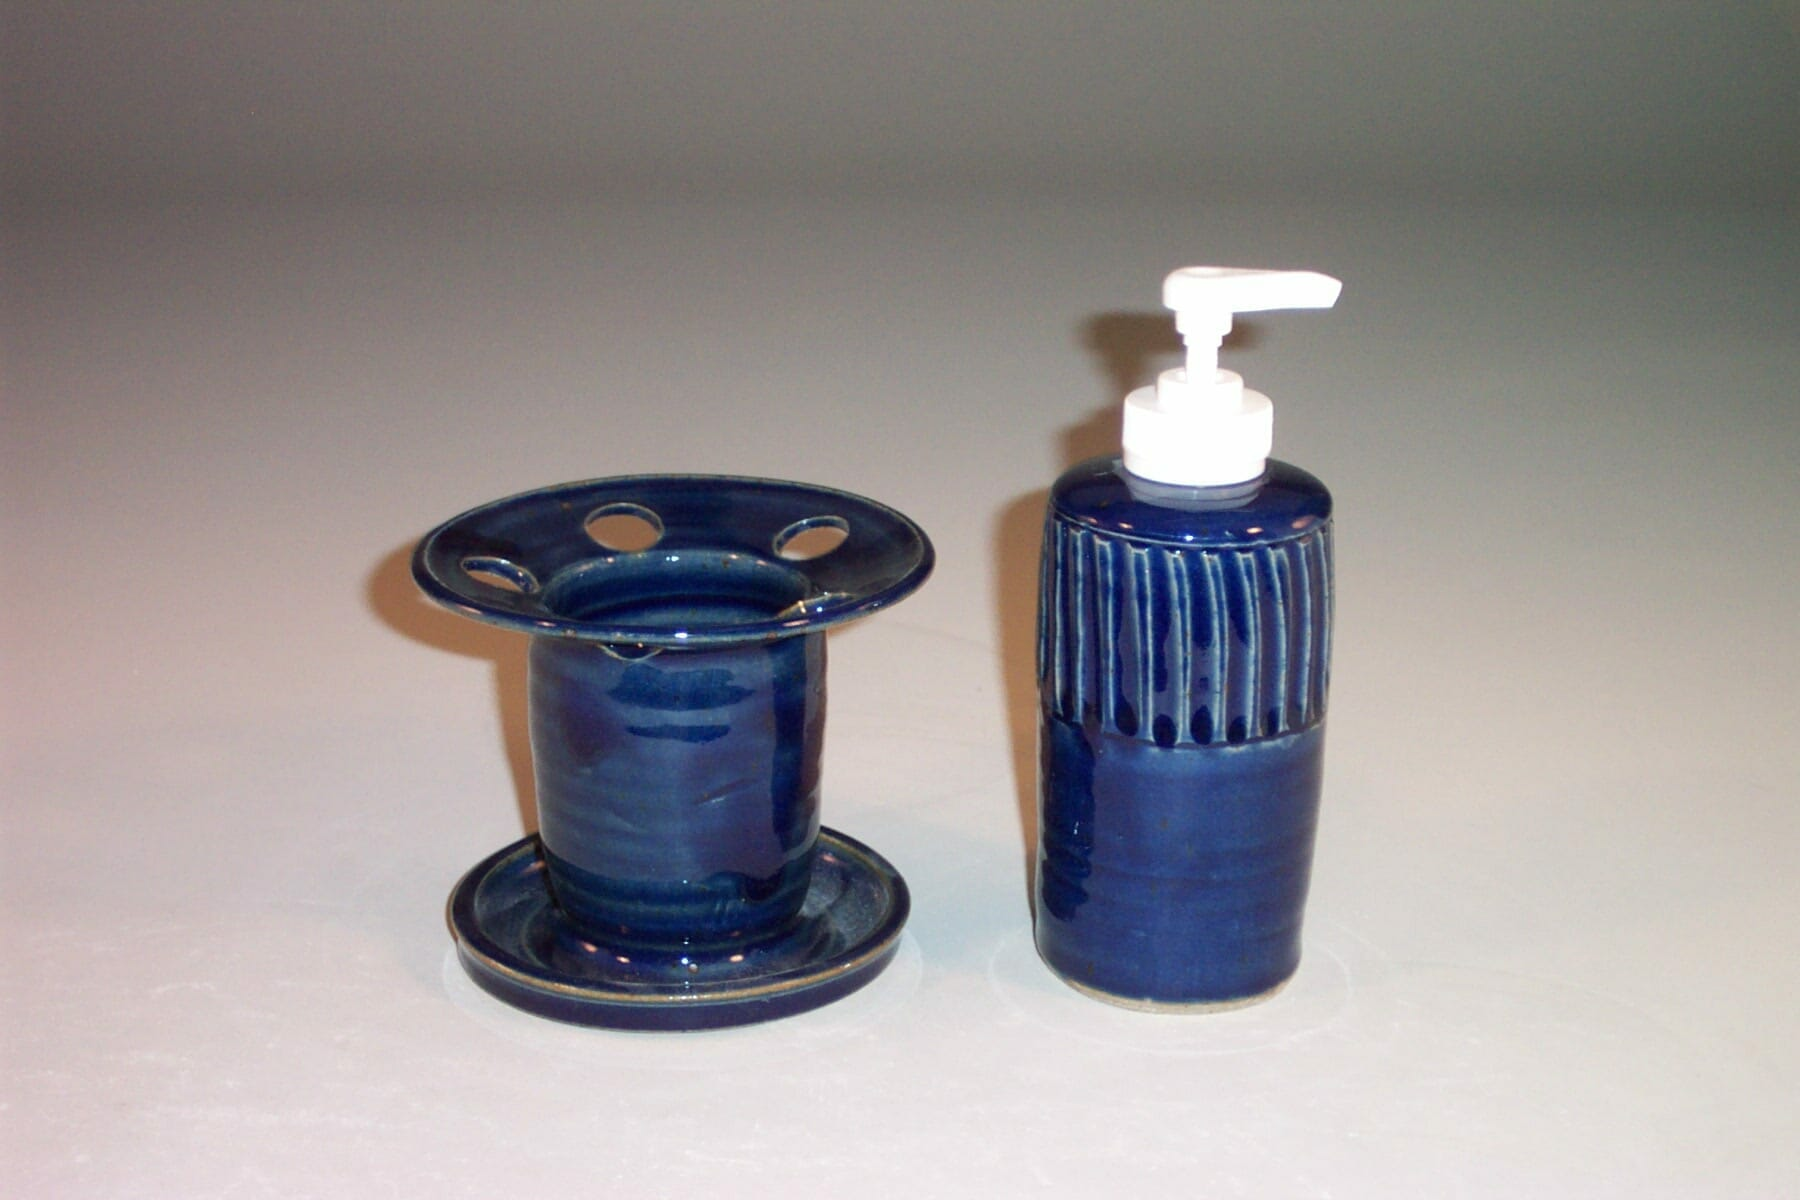 Toothbrush Holder and Soap Dispenser Fluted Design in Dark Blue Glaze